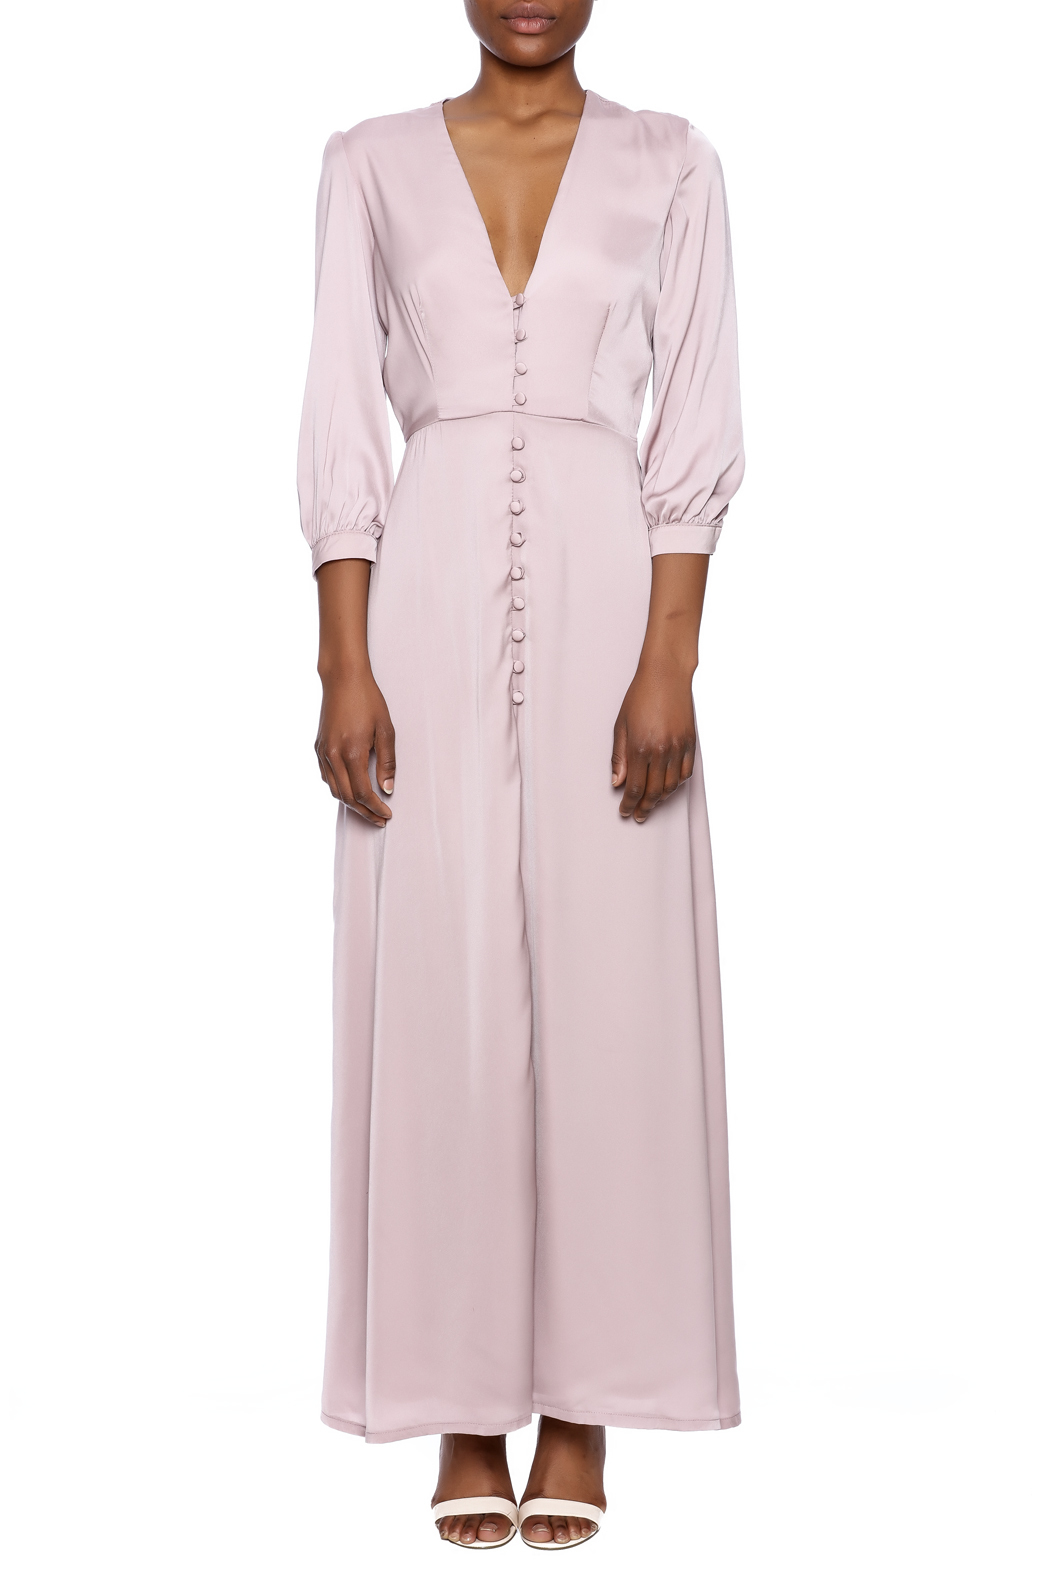 Oh My Love Tea Maxi Dress From Texas By V X Boutique Shoptiques